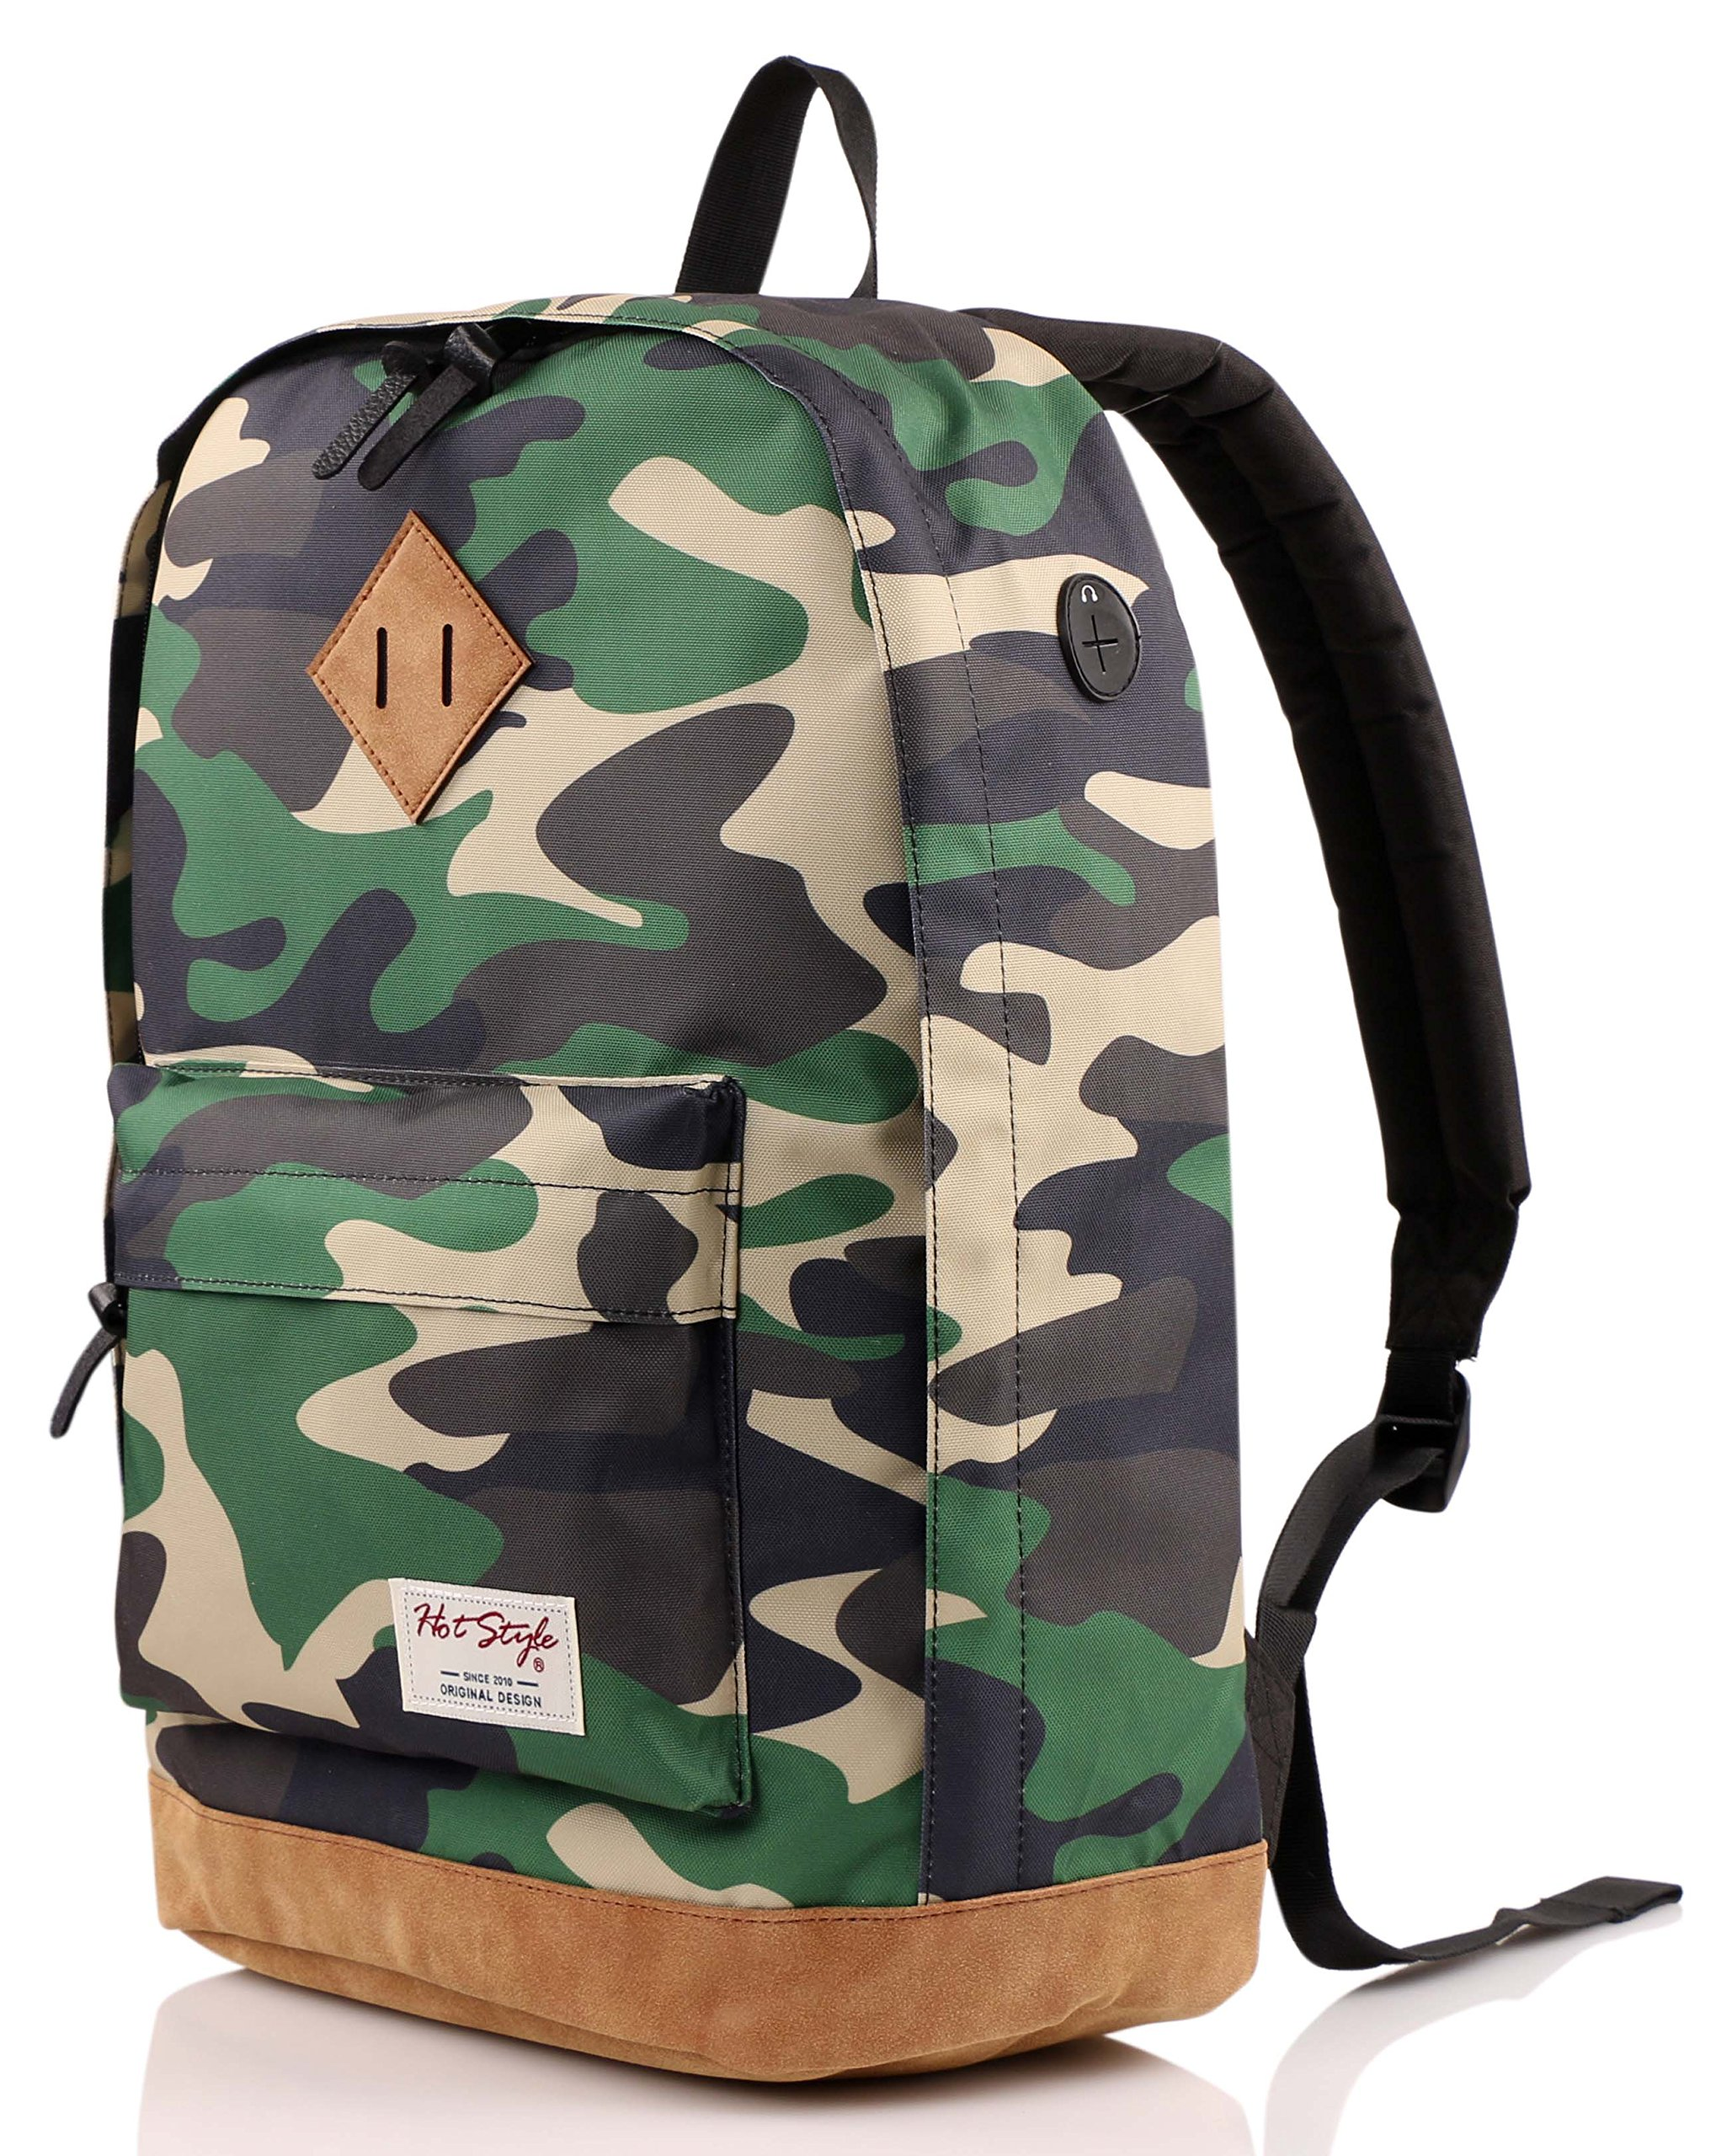 936Plus College Backpack High School Bookbag, Jungle Camo by HotStyle